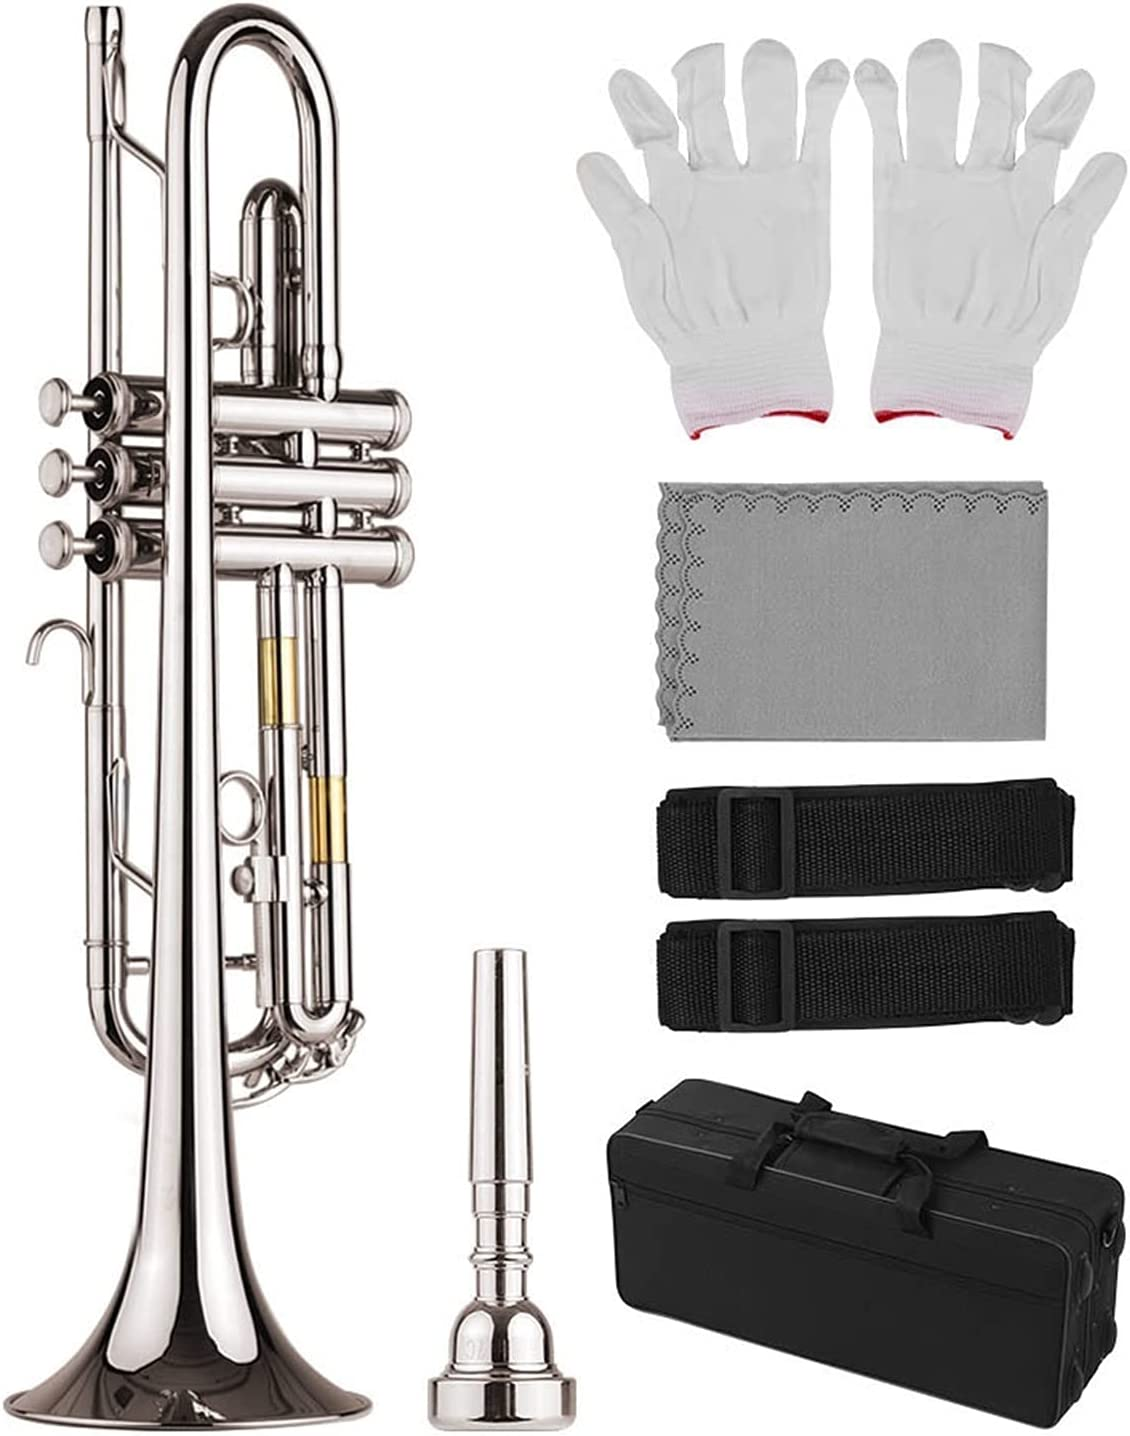 Standard Rare Bb Trumpet Brass Material Plated Selling and selling Nickle Instrument Wind